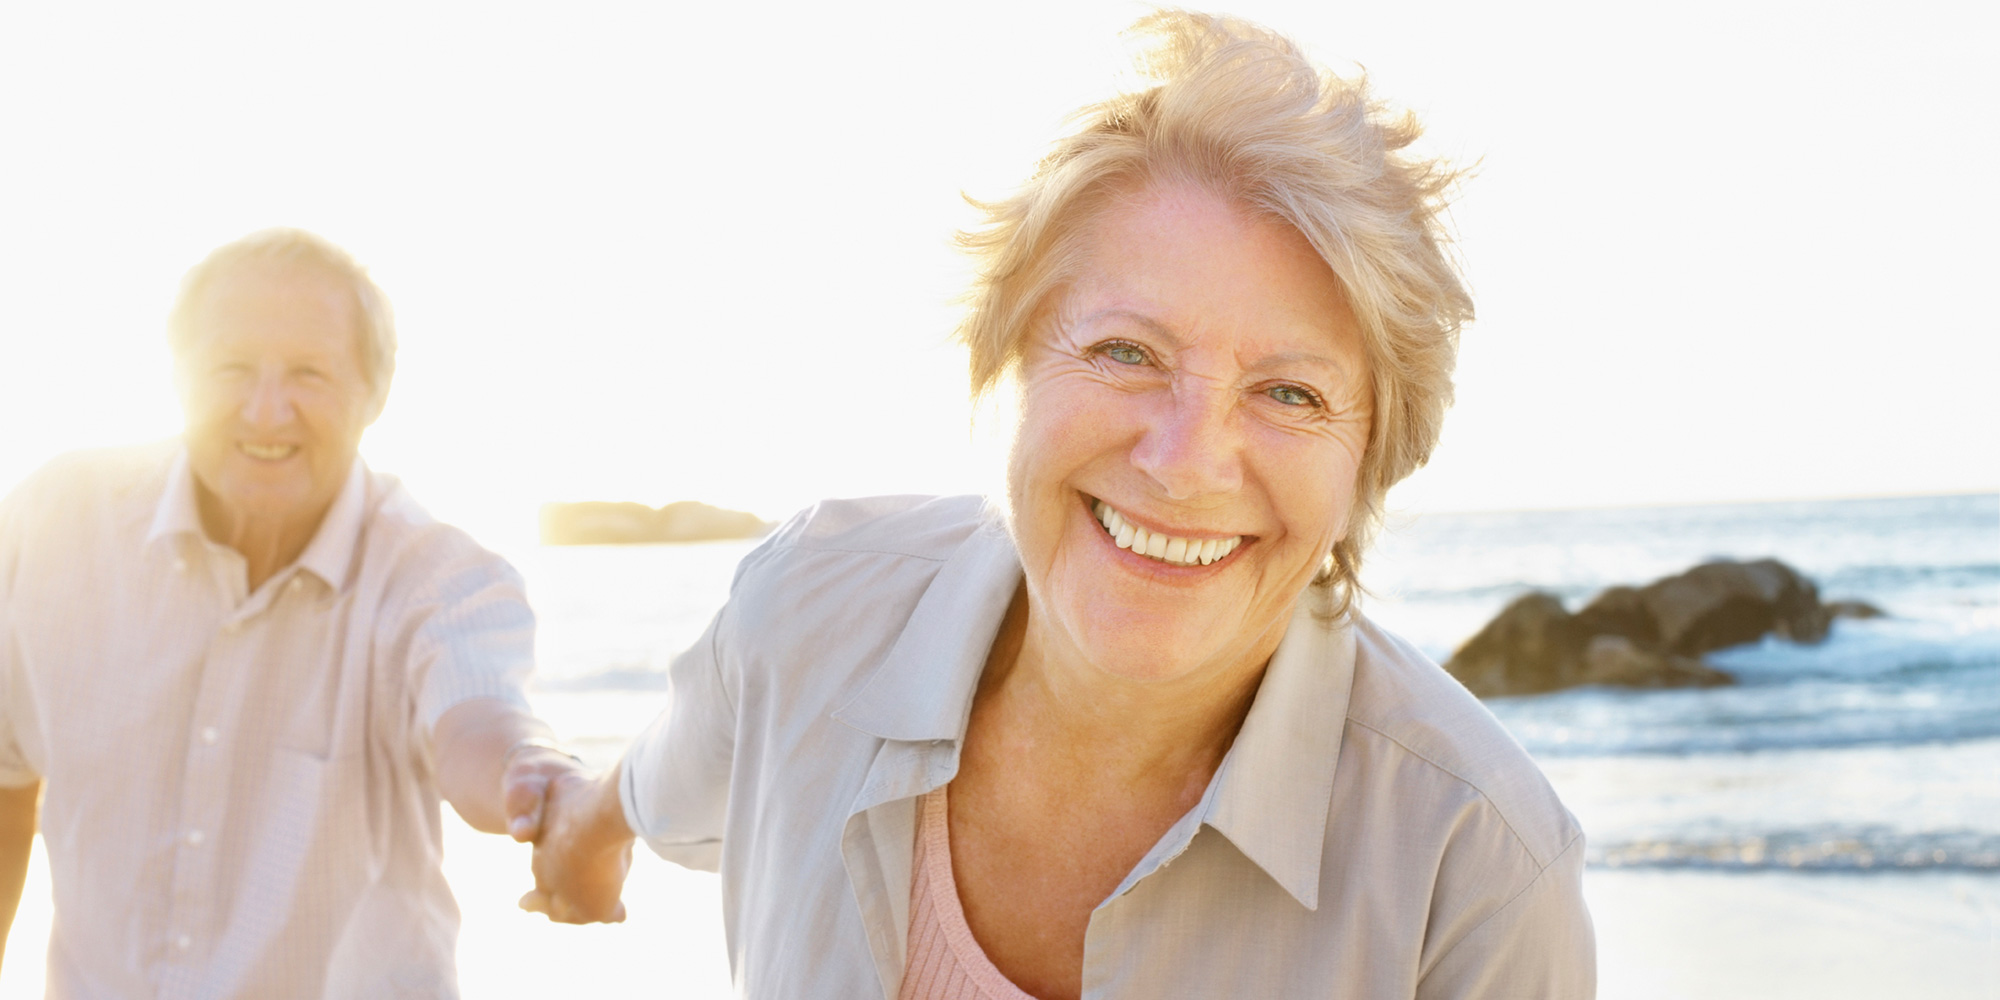 Enjoy your golden years with confidence in your medicare supplement plan rates and service.